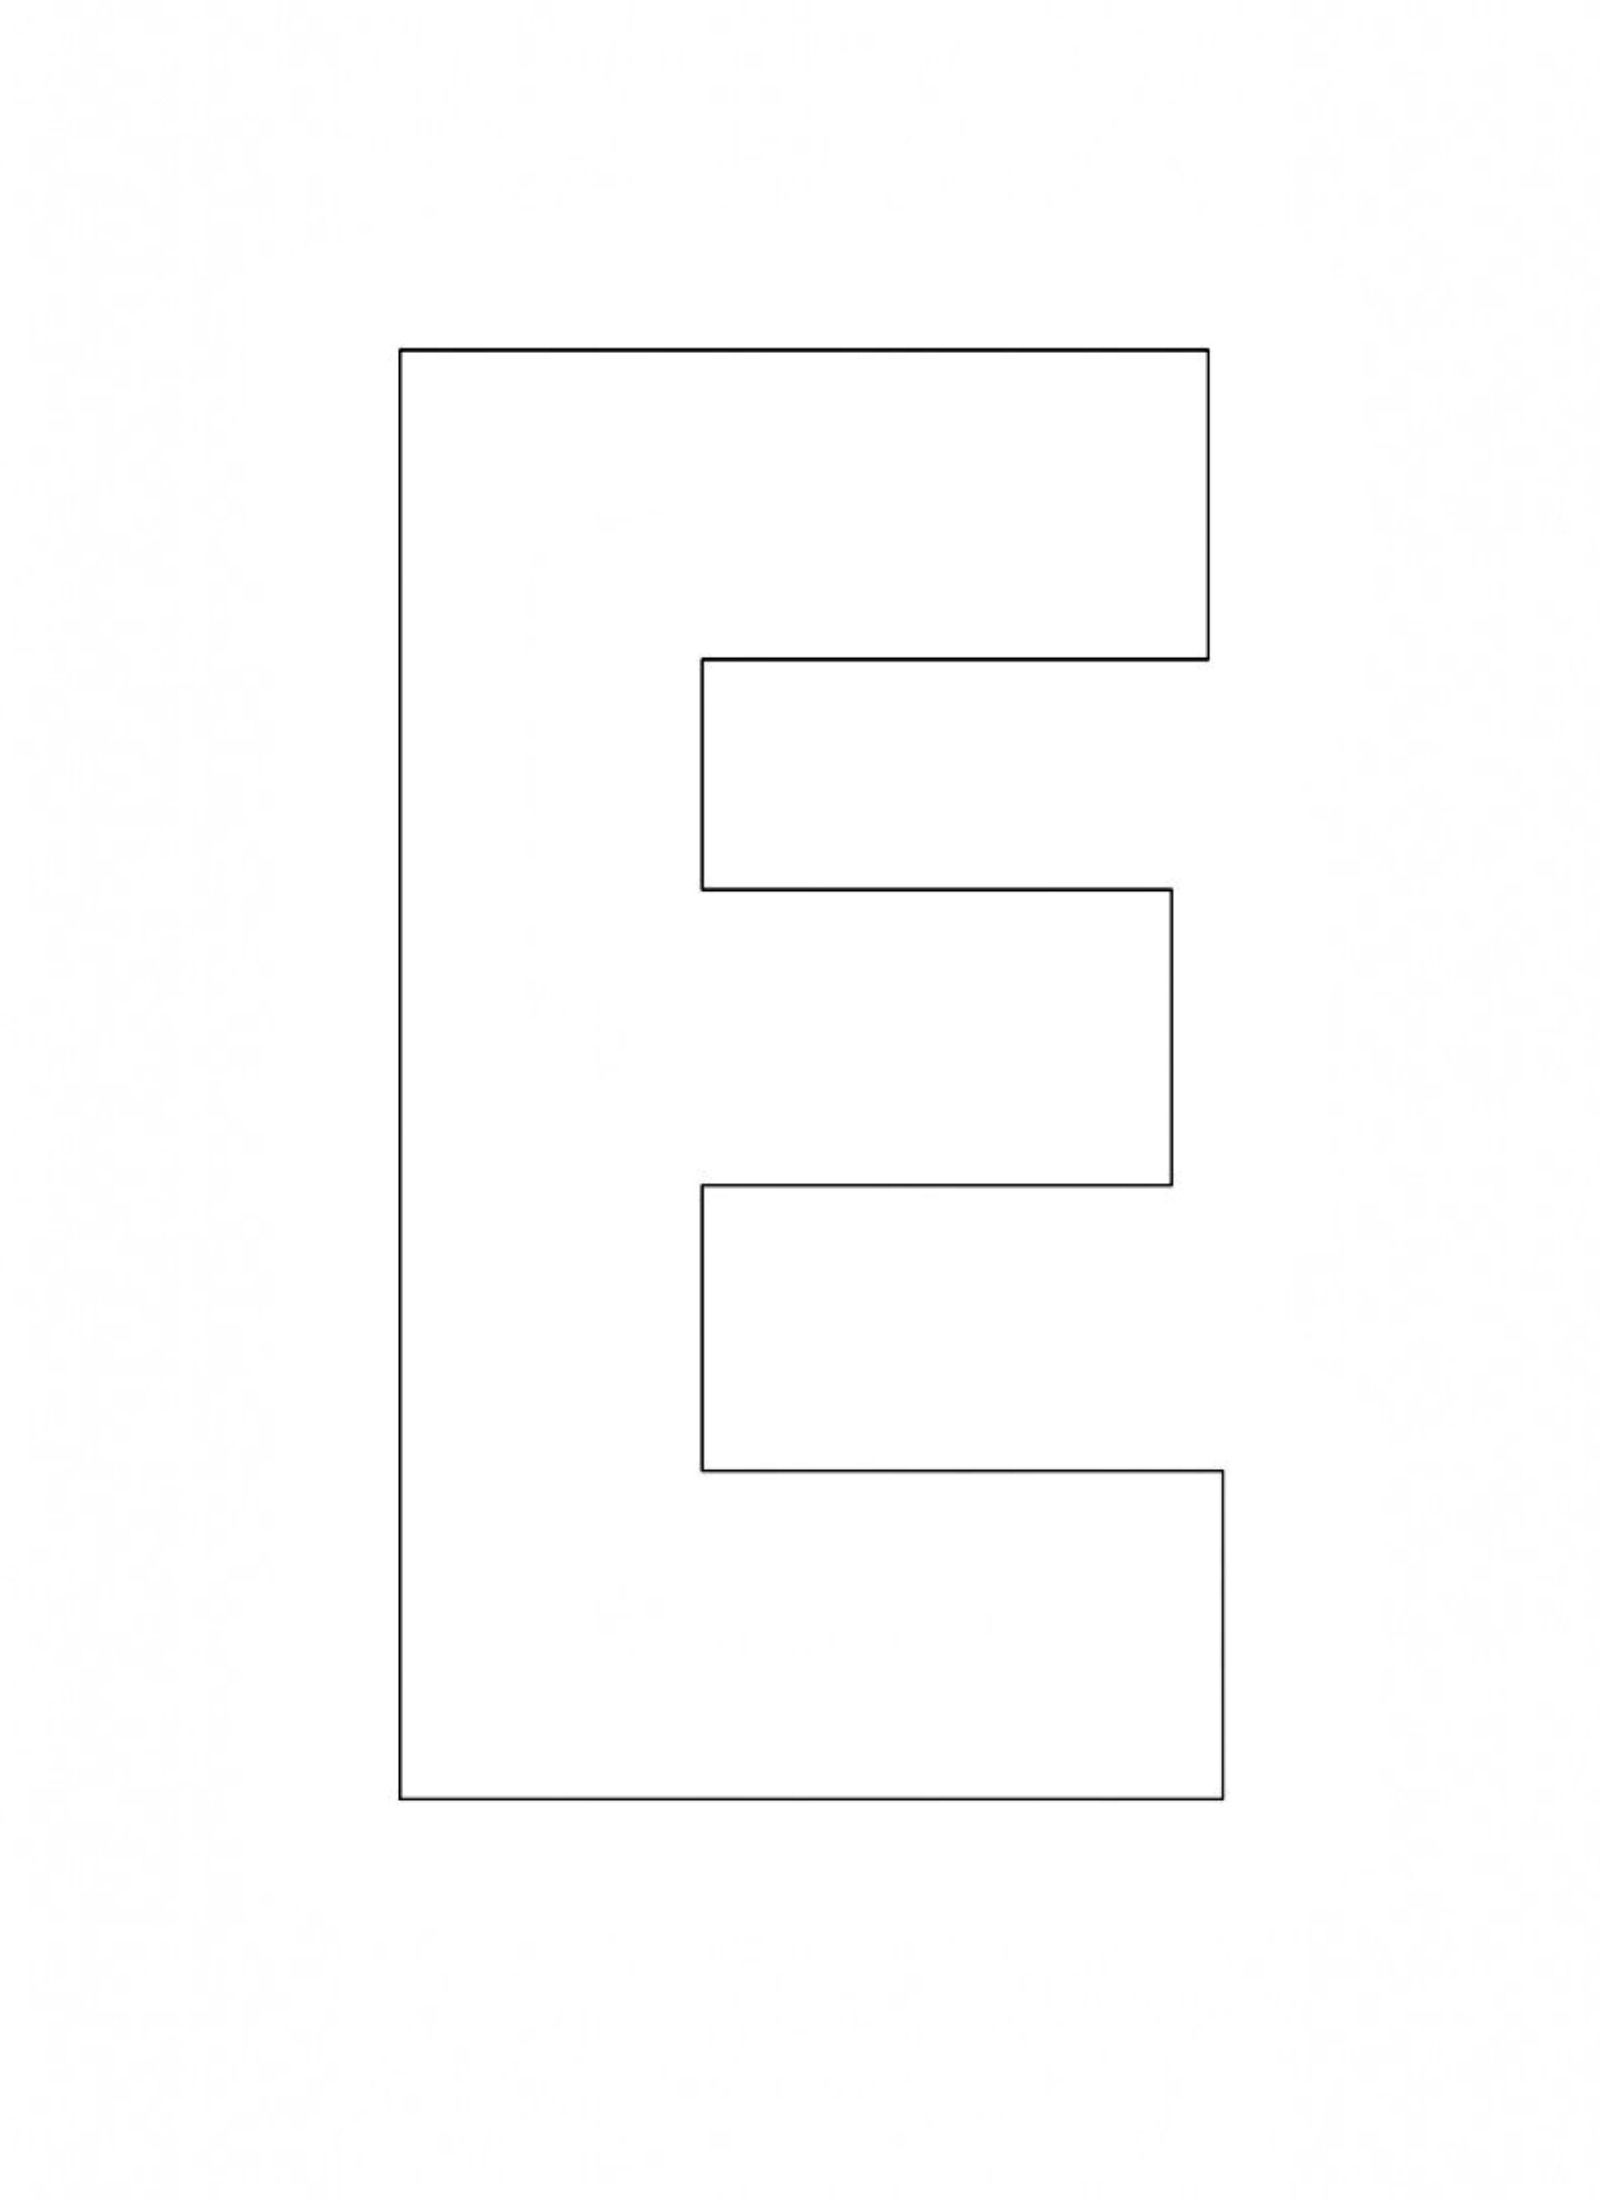 picture regarding Letter E Printable referred to as letter e printable PrintableTemplates